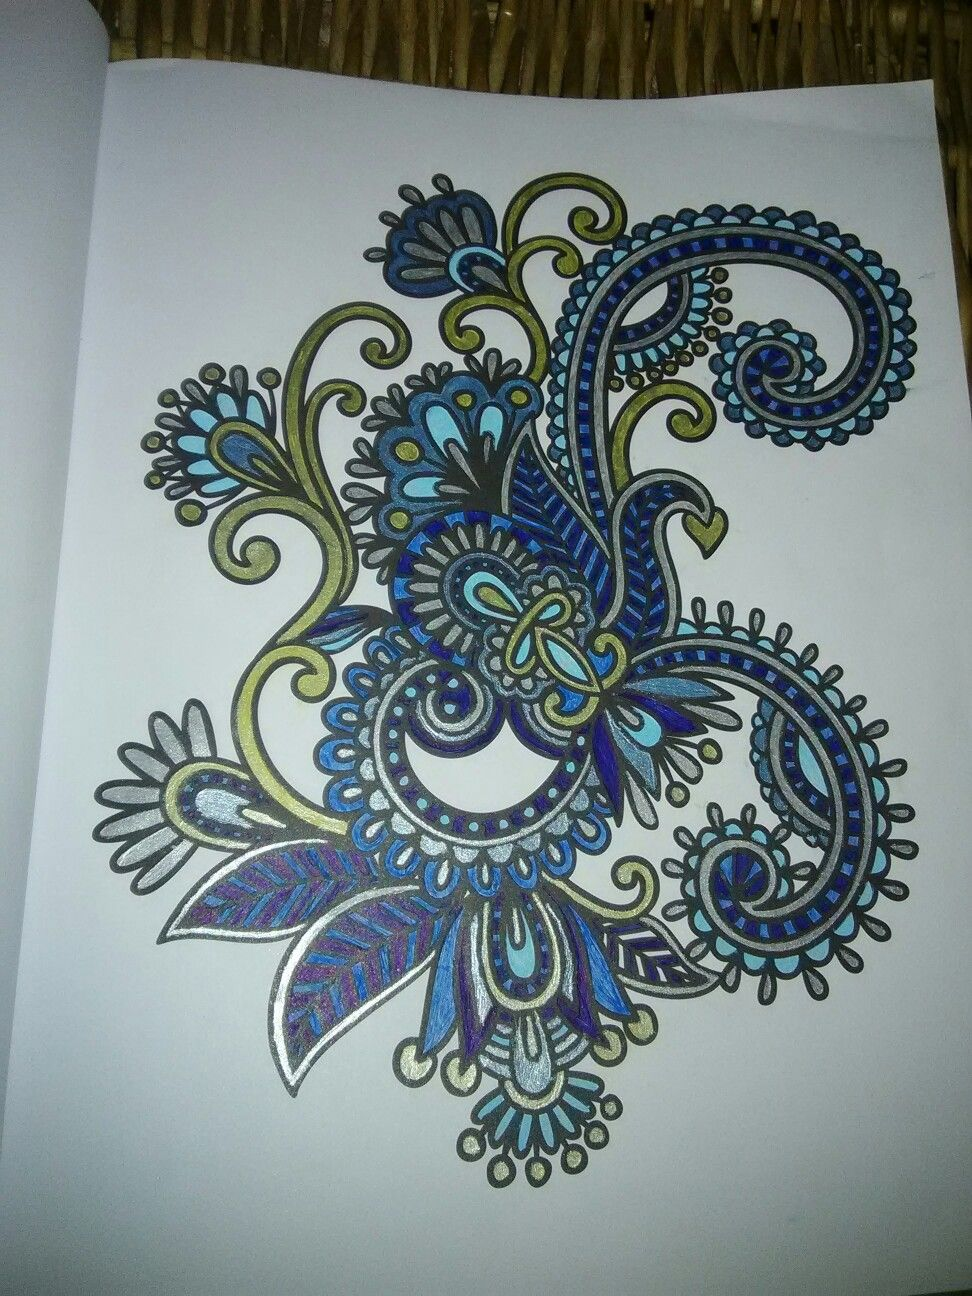 gel pen coloring pages Gel pens and bic mark its | coloring pages | Pinterest gel pen coloring pages